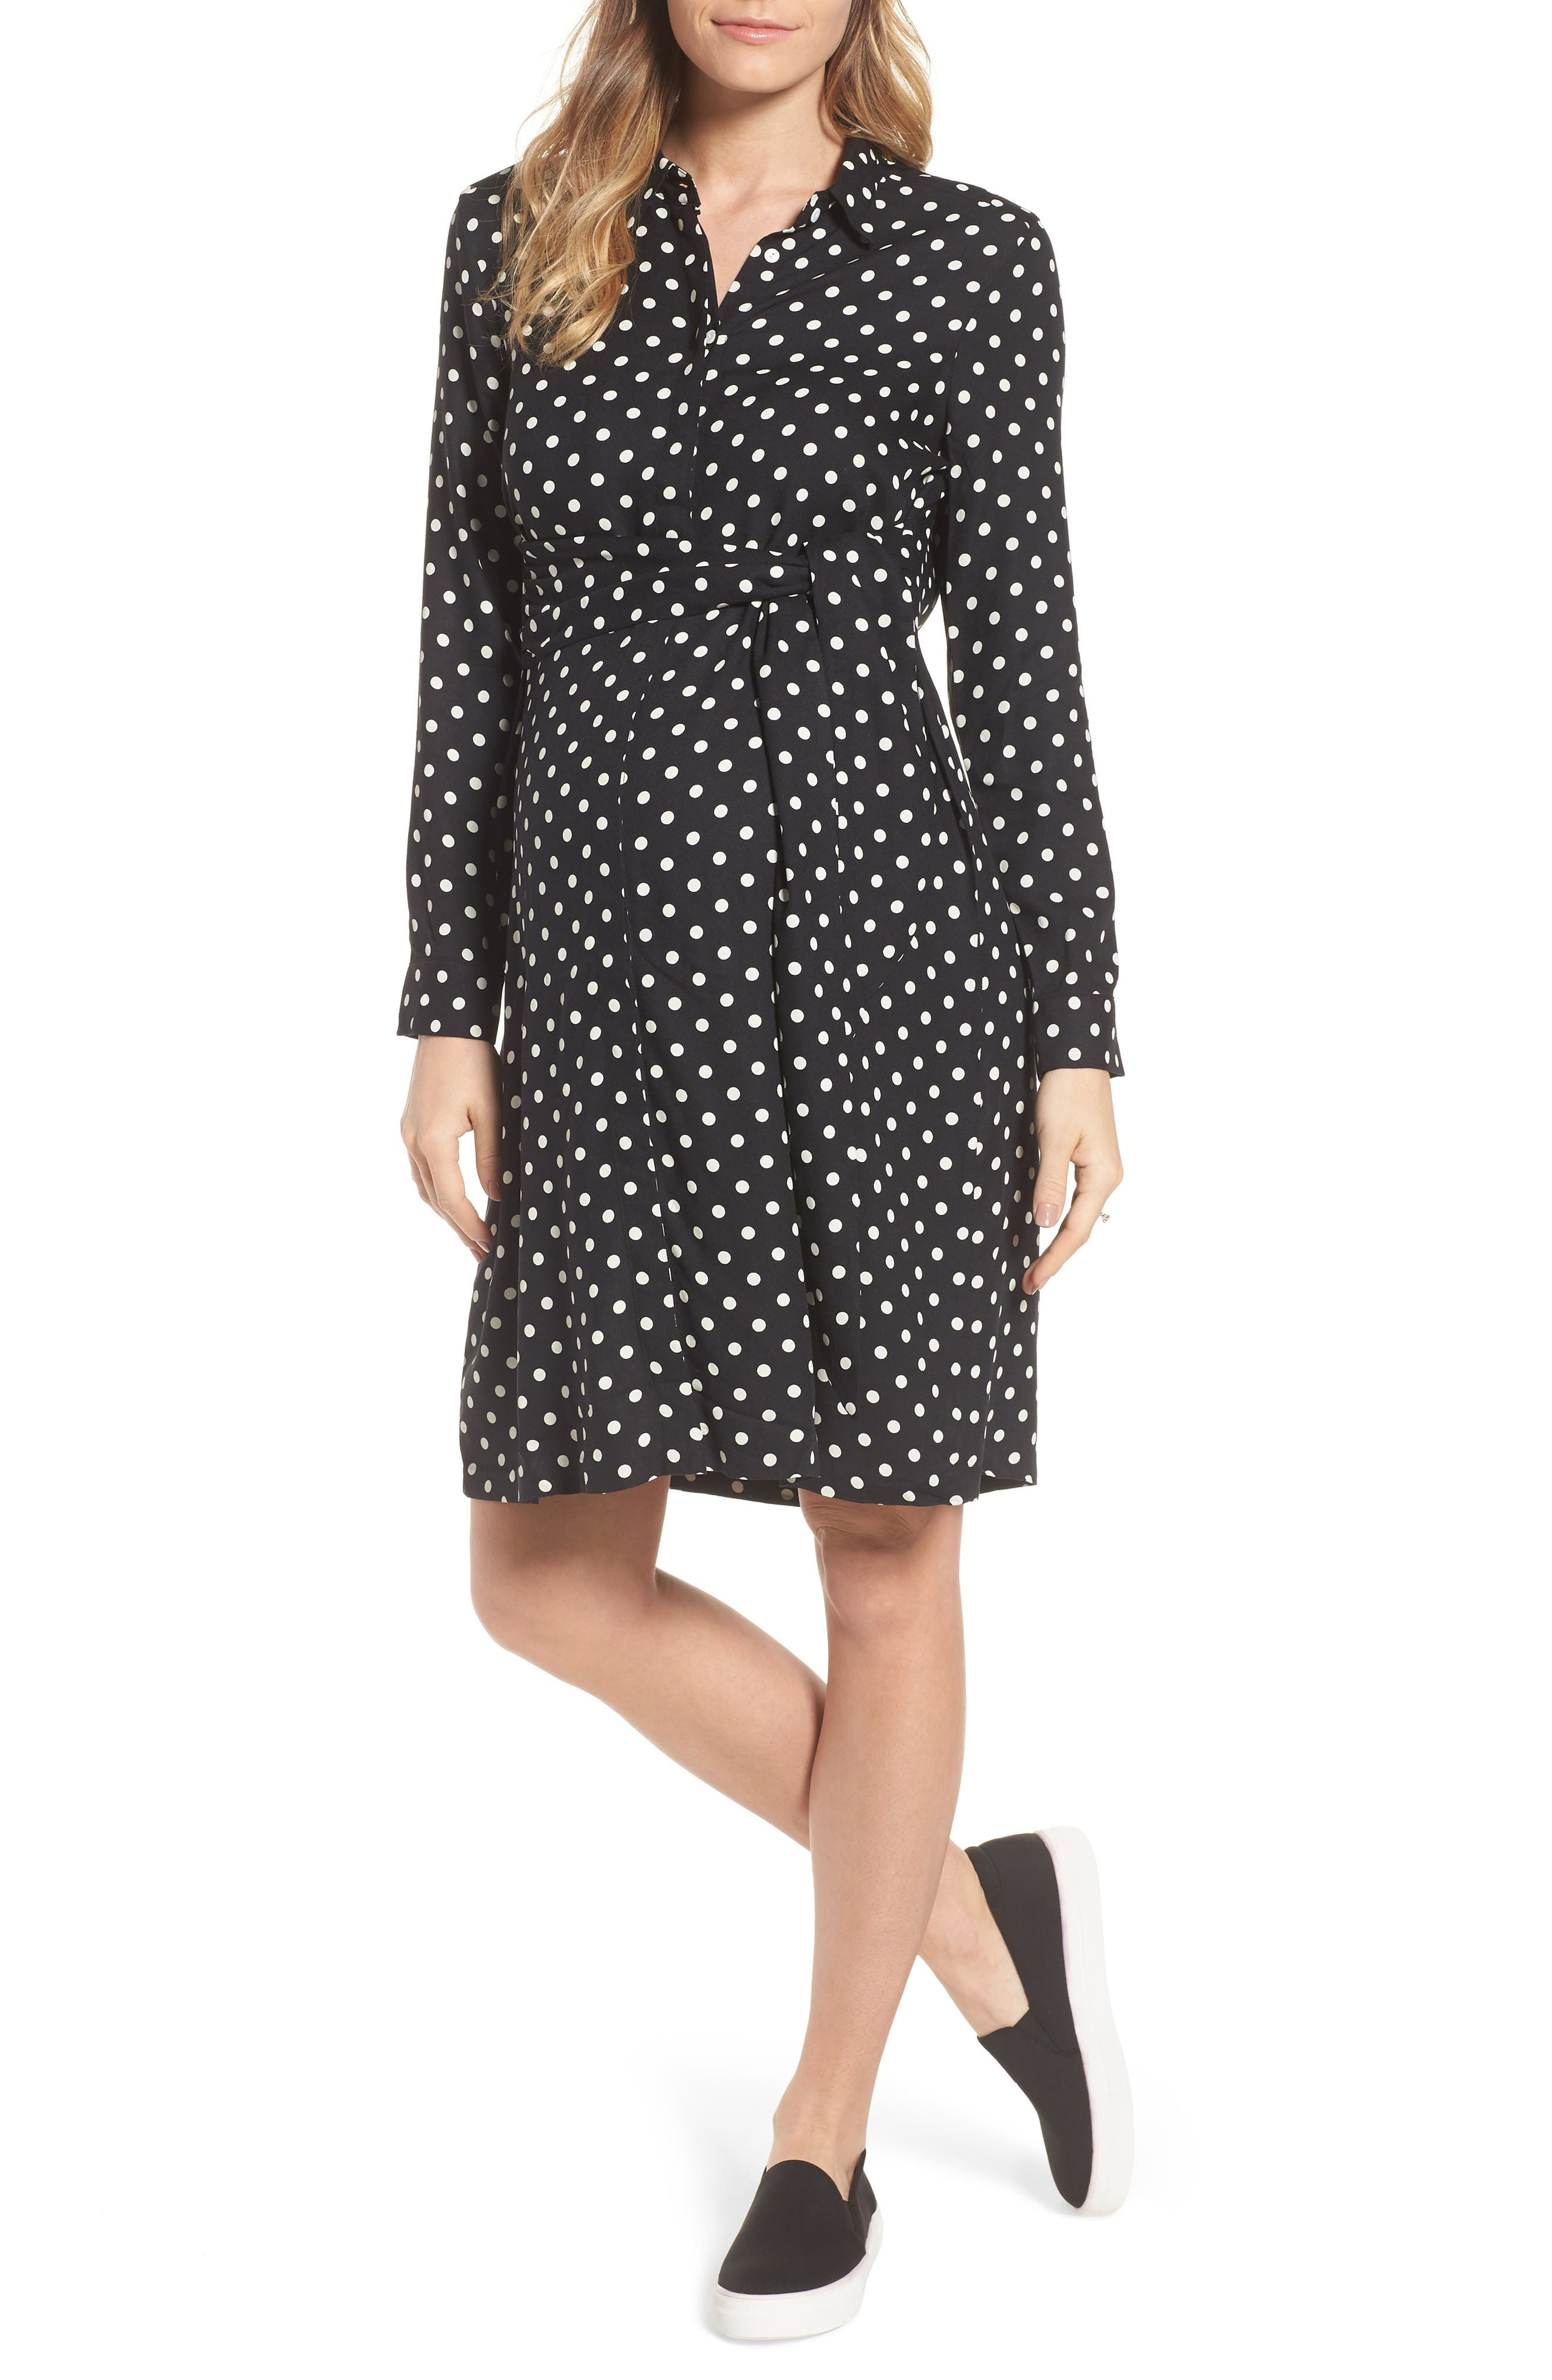 ISABELLA OLIVER Elisha Maternity Shirtdress, Main, color, BLACK/WHITE POLKA CREPE